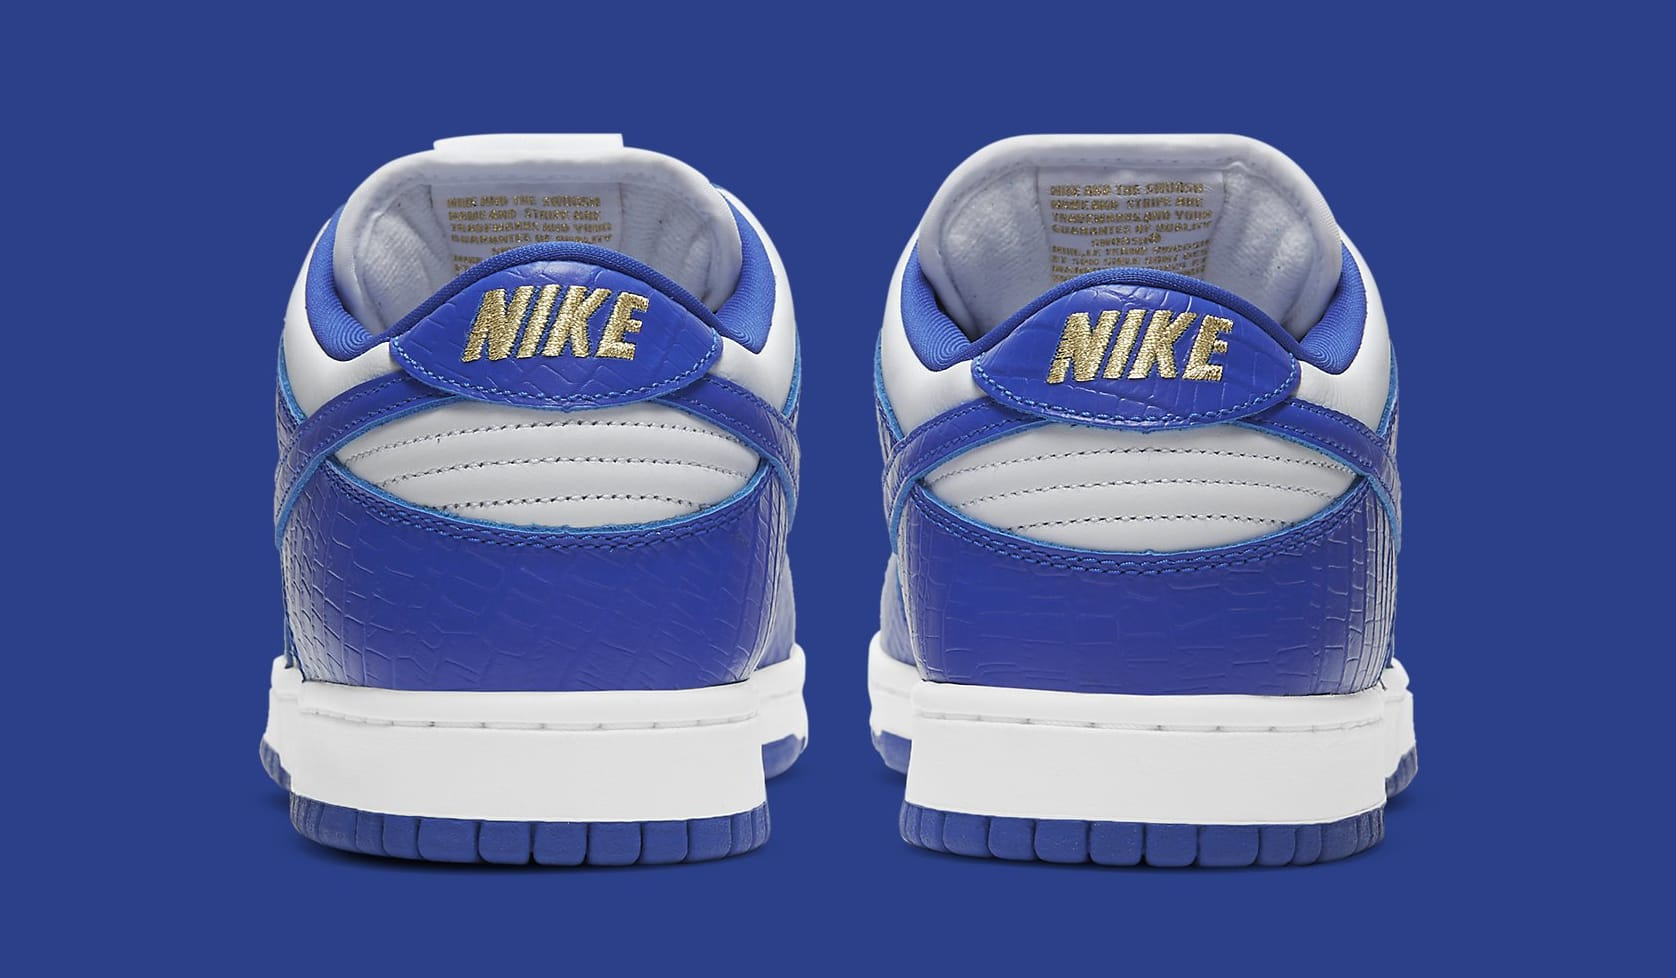 Supreme x Nike SB Dunk Low 'Hyper Royal' DH3228-100 Heel